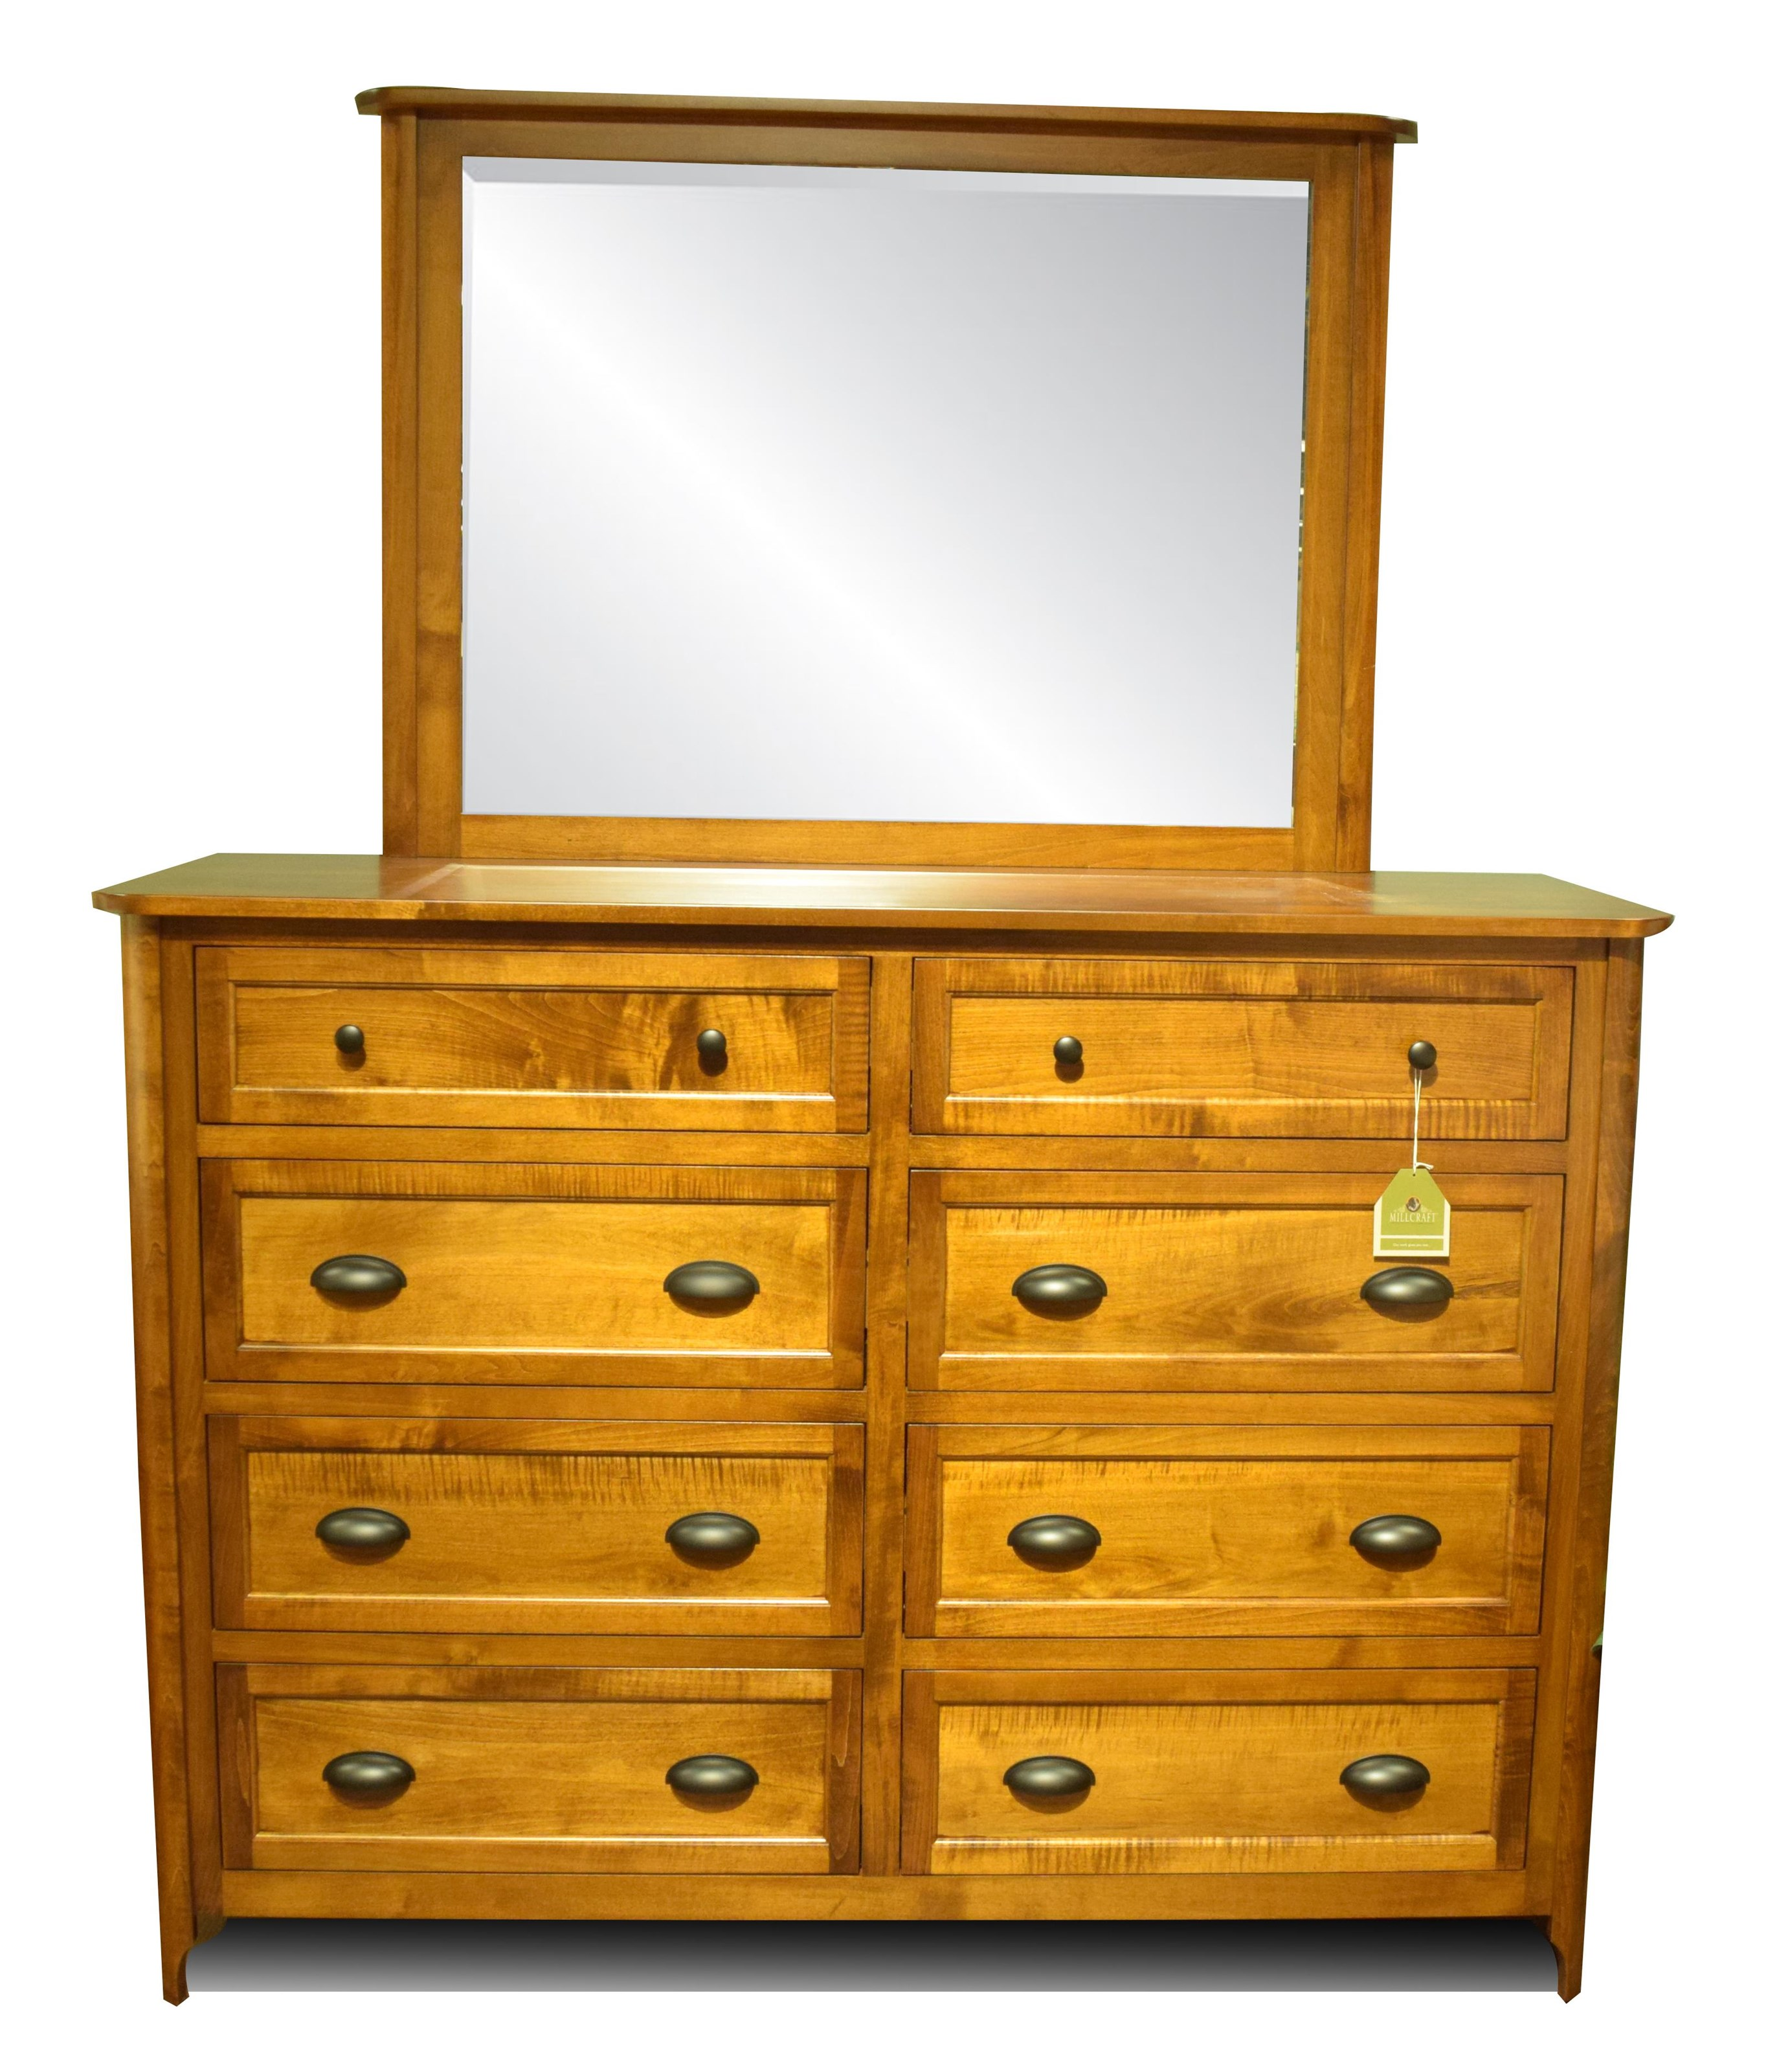 Amish Crafted in the USA Baldwin Dresser and Mirror - Item Number: B16BA-DM